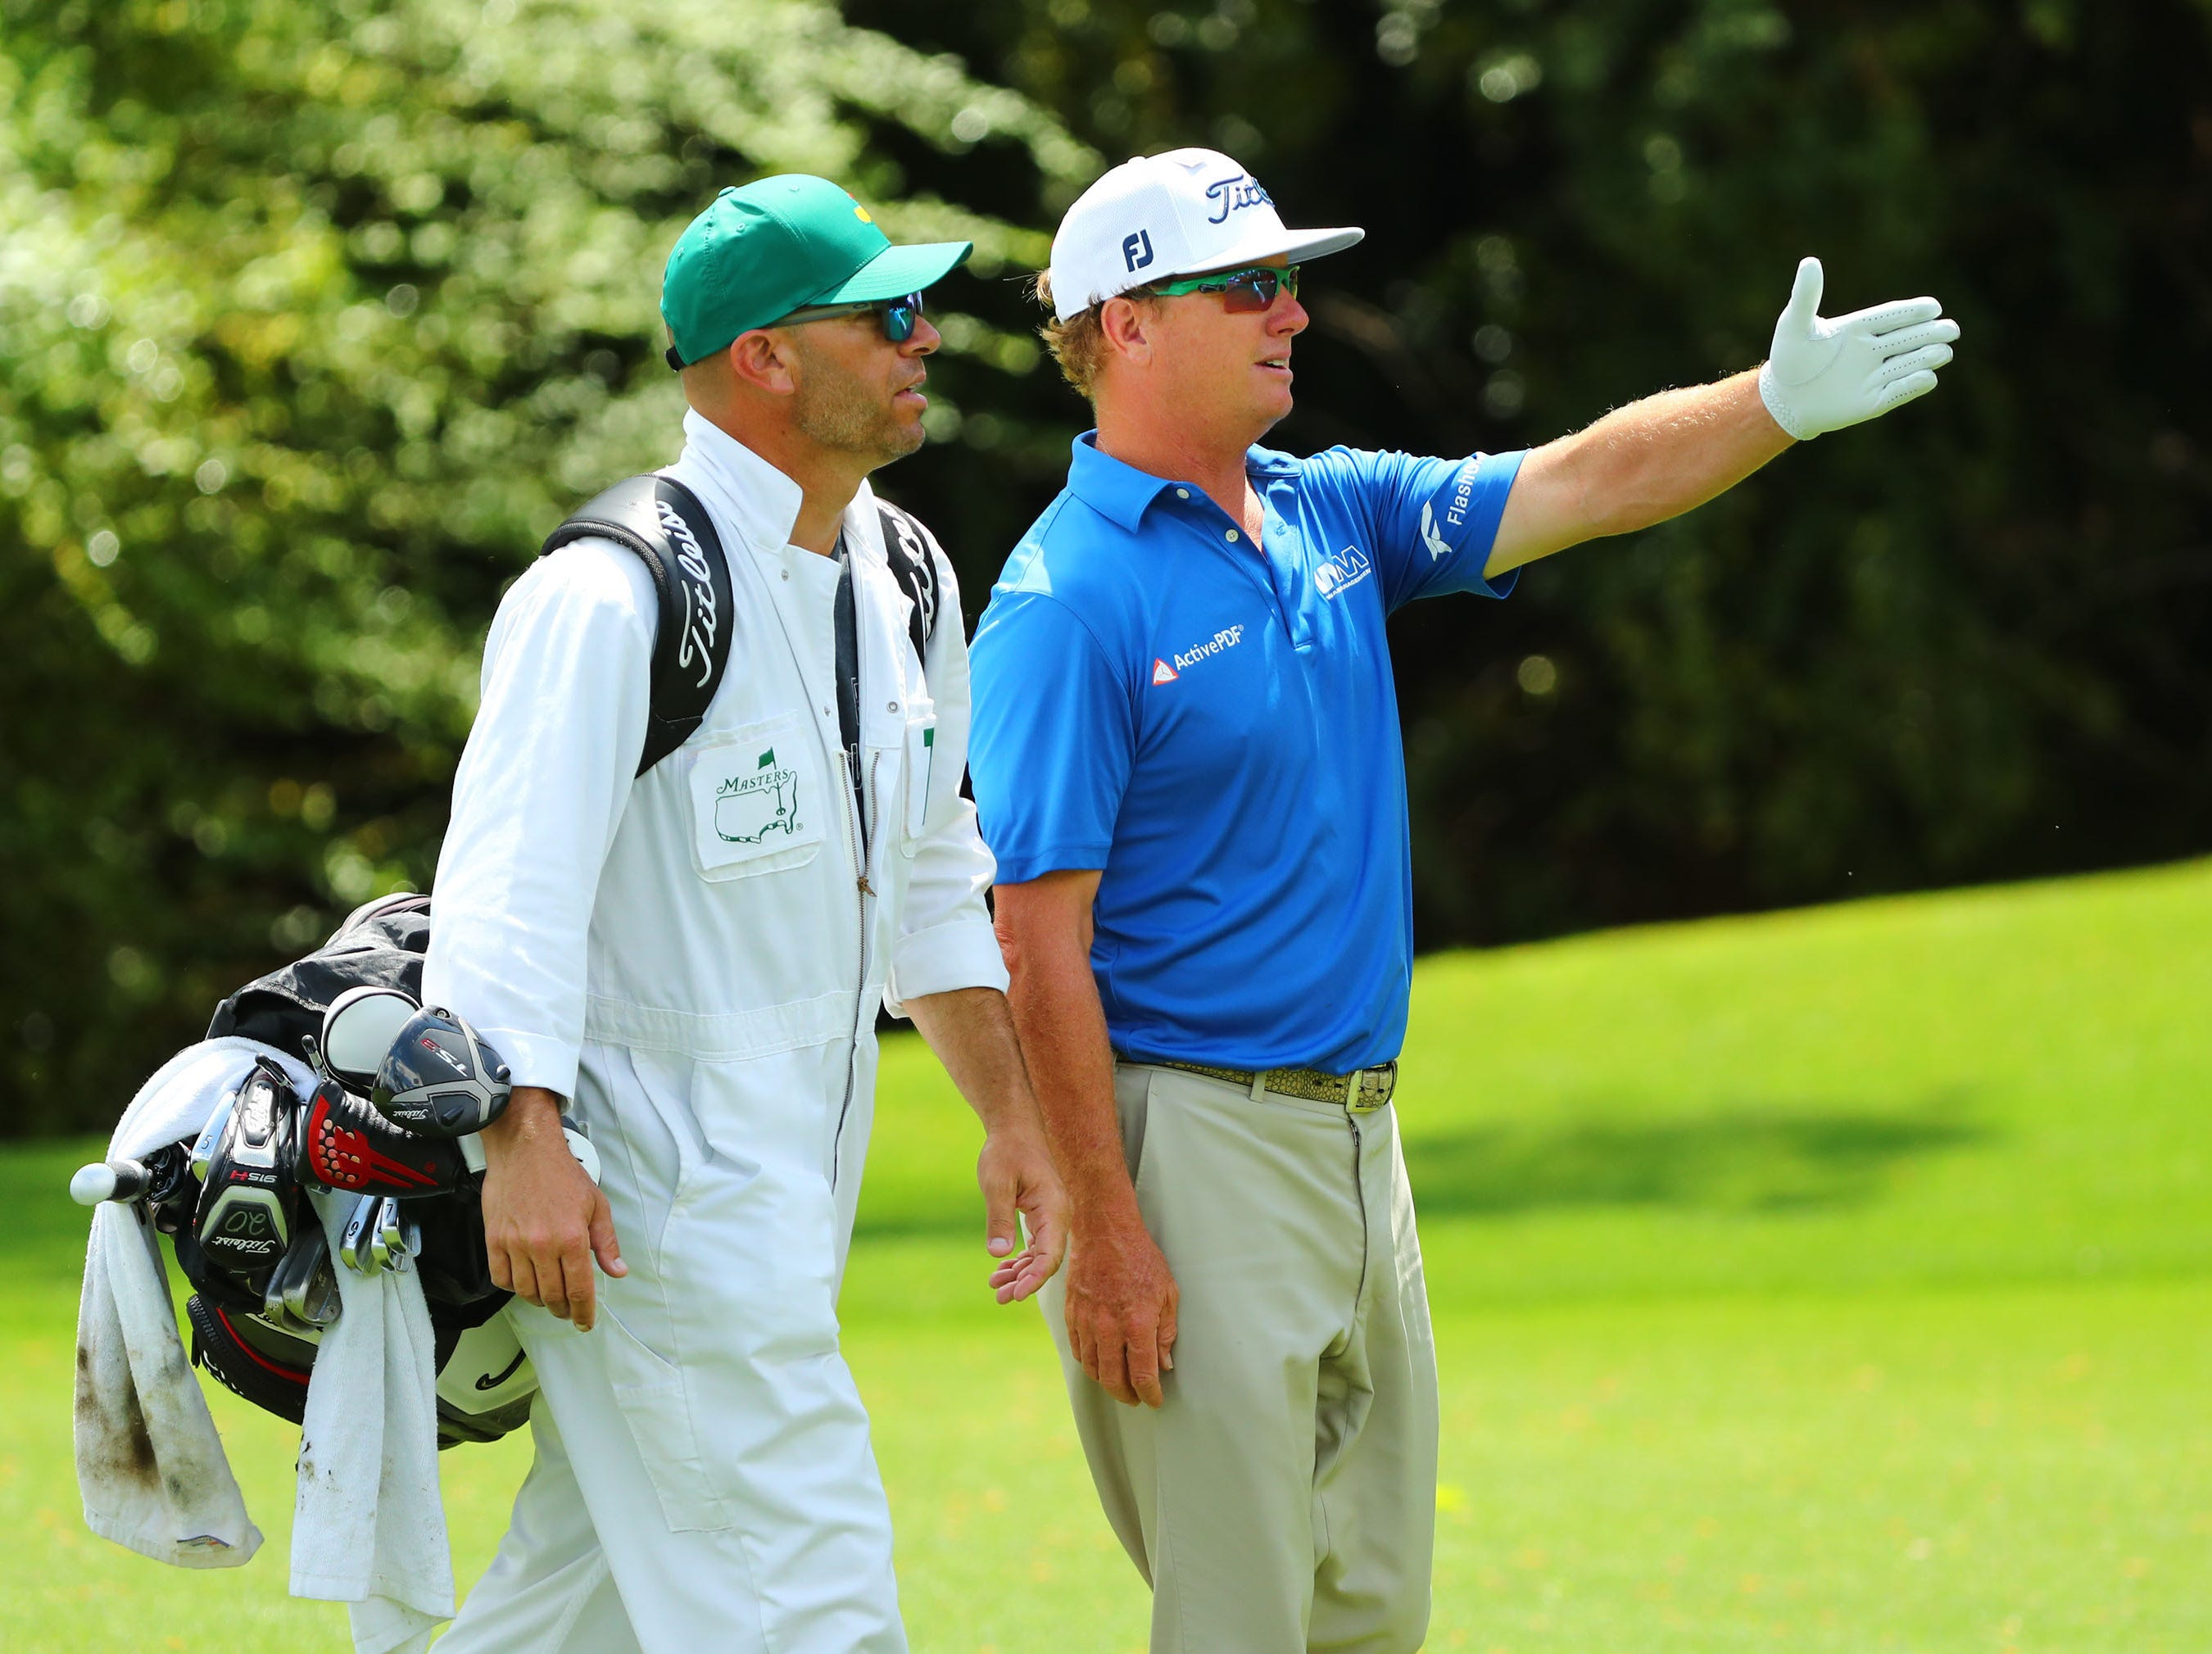 Apr 9, 2019; Augusta, GA, USA; Charley Hoffman and caddie Andy Barnes discuss a shot on the 13th fairway during a practice round for The Masters golf tournament at Augusta National Golf Club. Mandatory Credit: Rob Schumacher-USA TODAY Sports